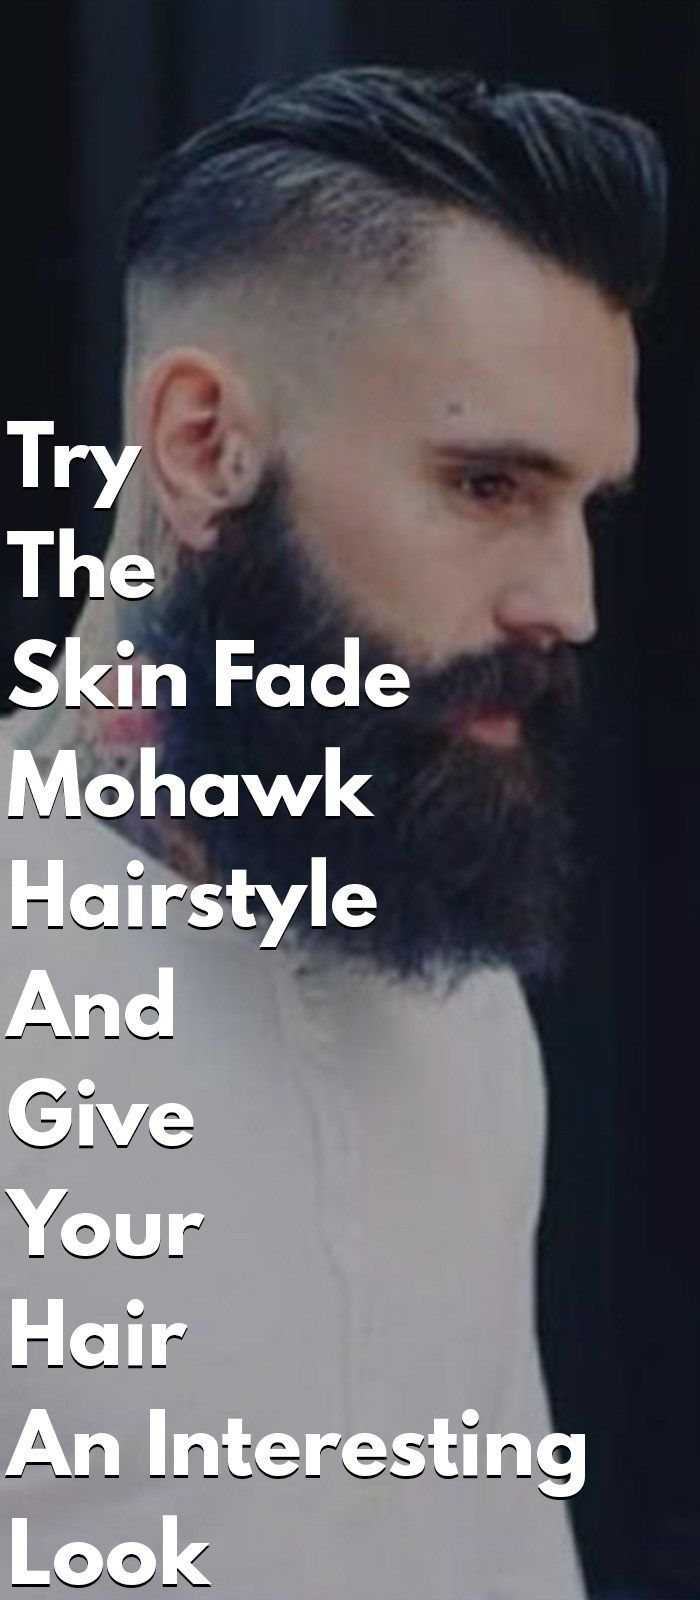 Try the skin fade mohawk hairstyle and give your hair an interesting